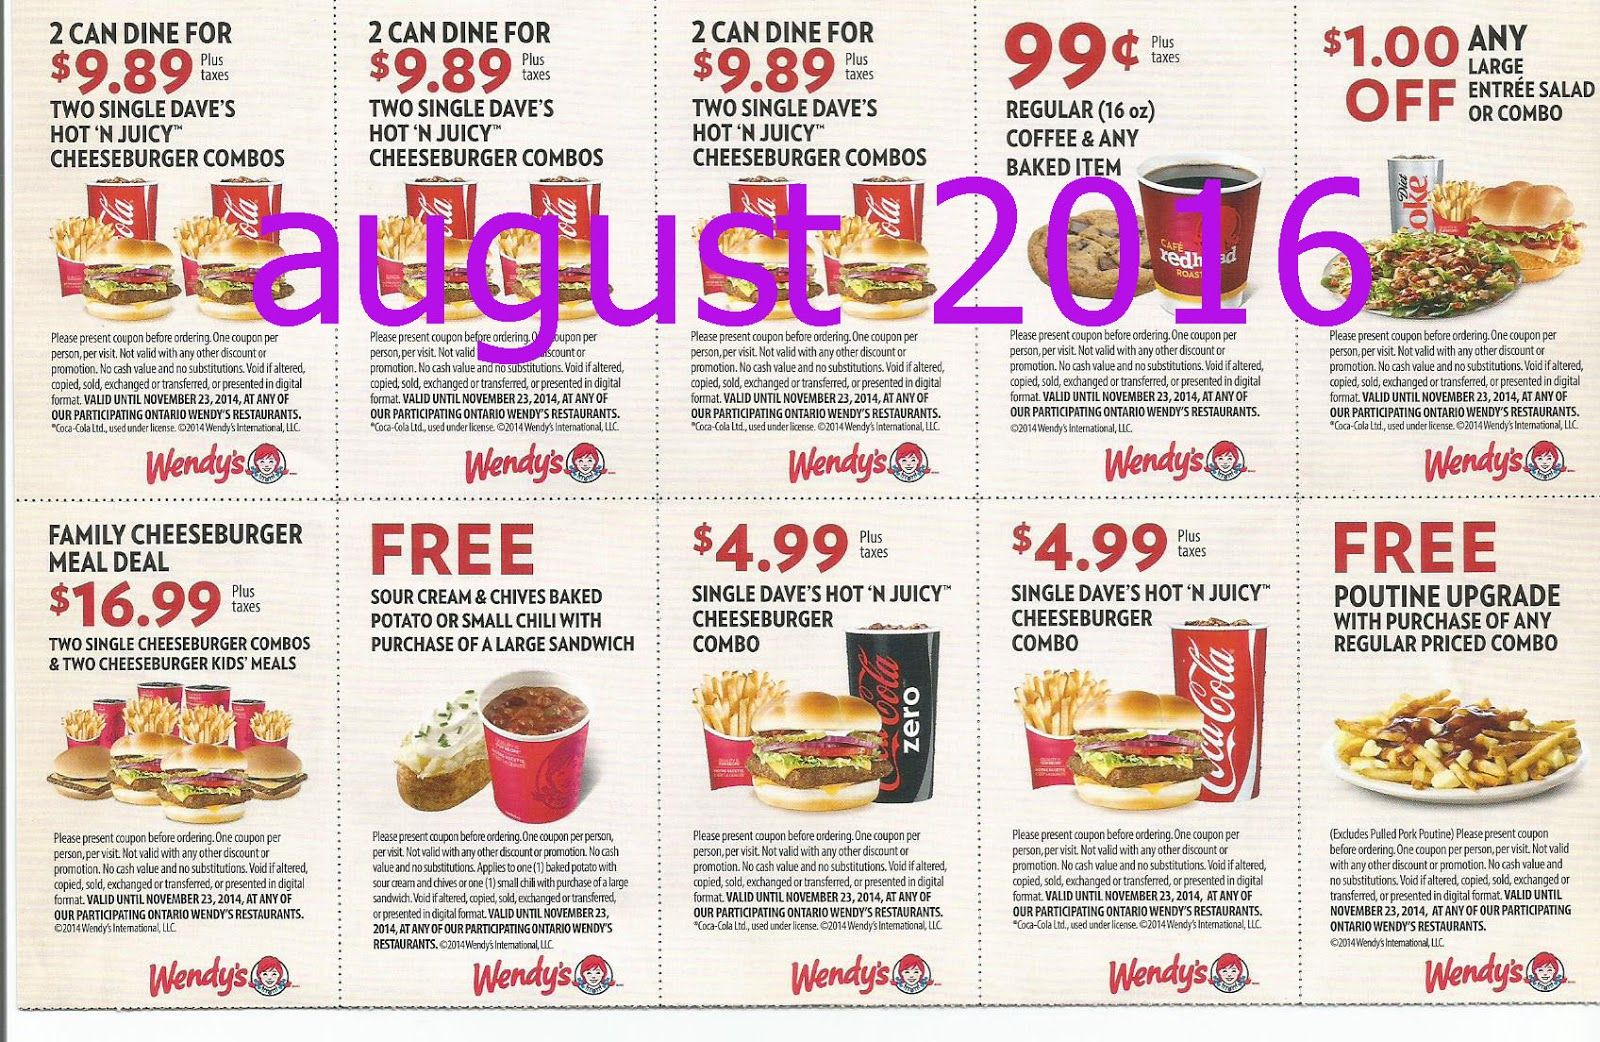 Free Printable Coupons: Wendys Coupons   Fast Food Coupons - Free Printable Coupons For Food